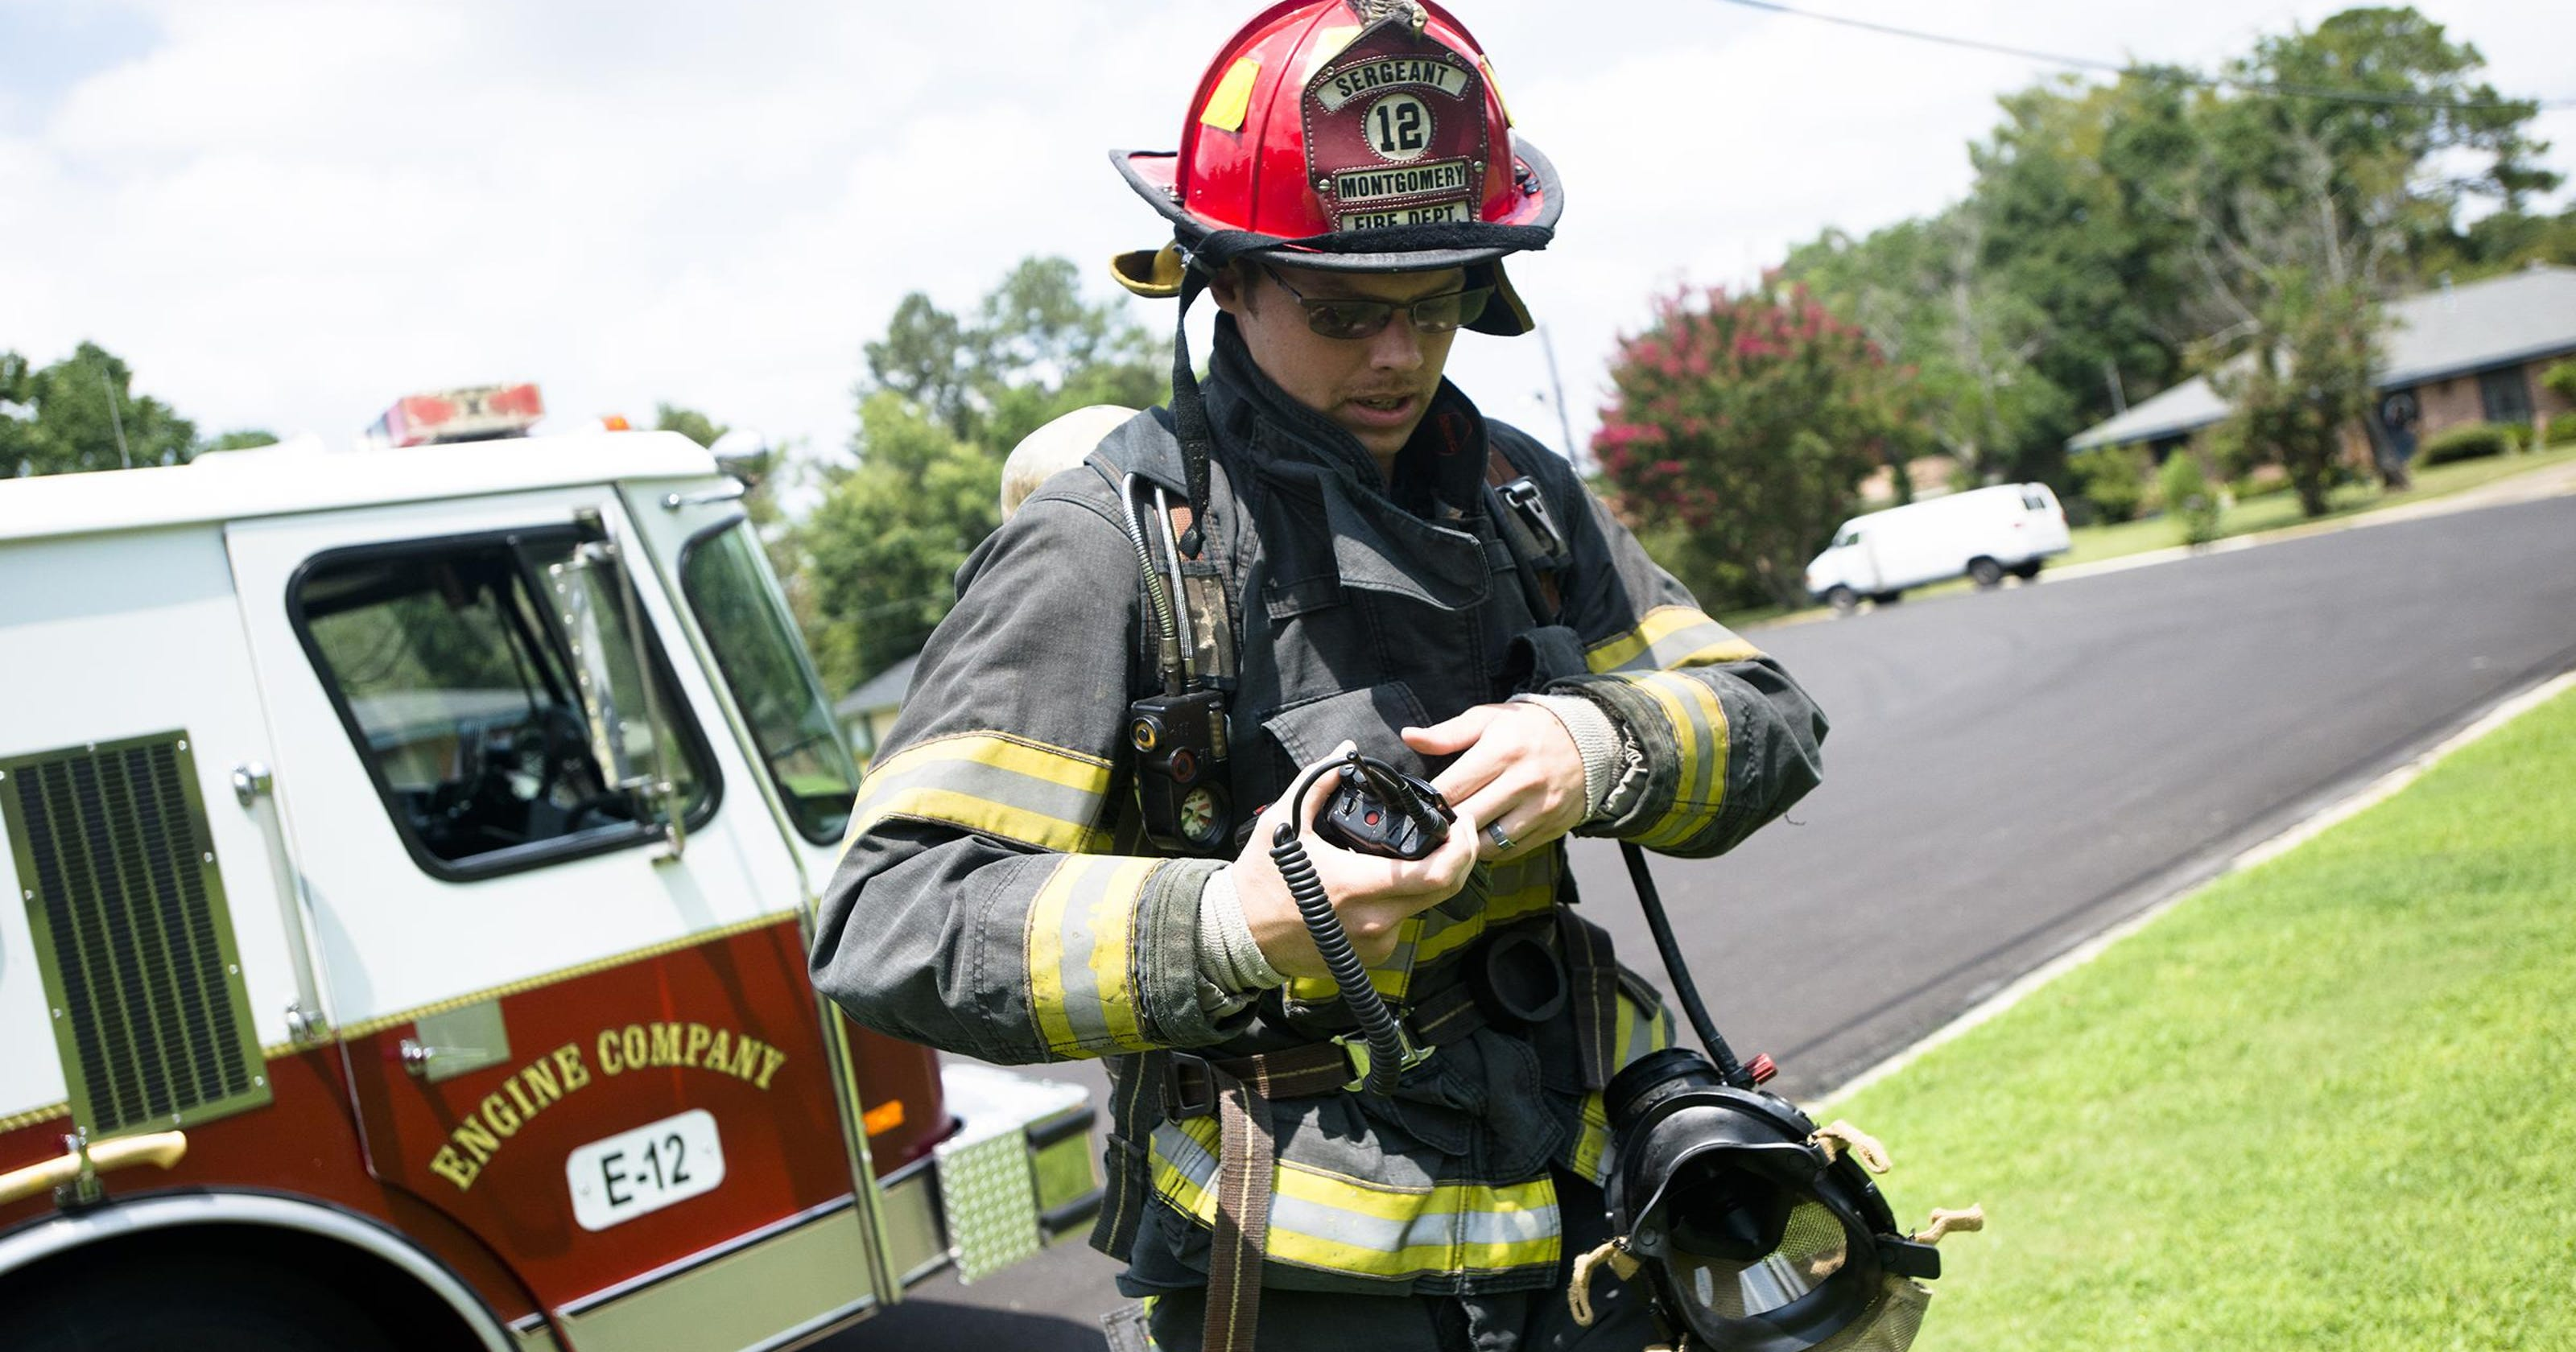 24 On: A day in the life of a Montgomery firefighter